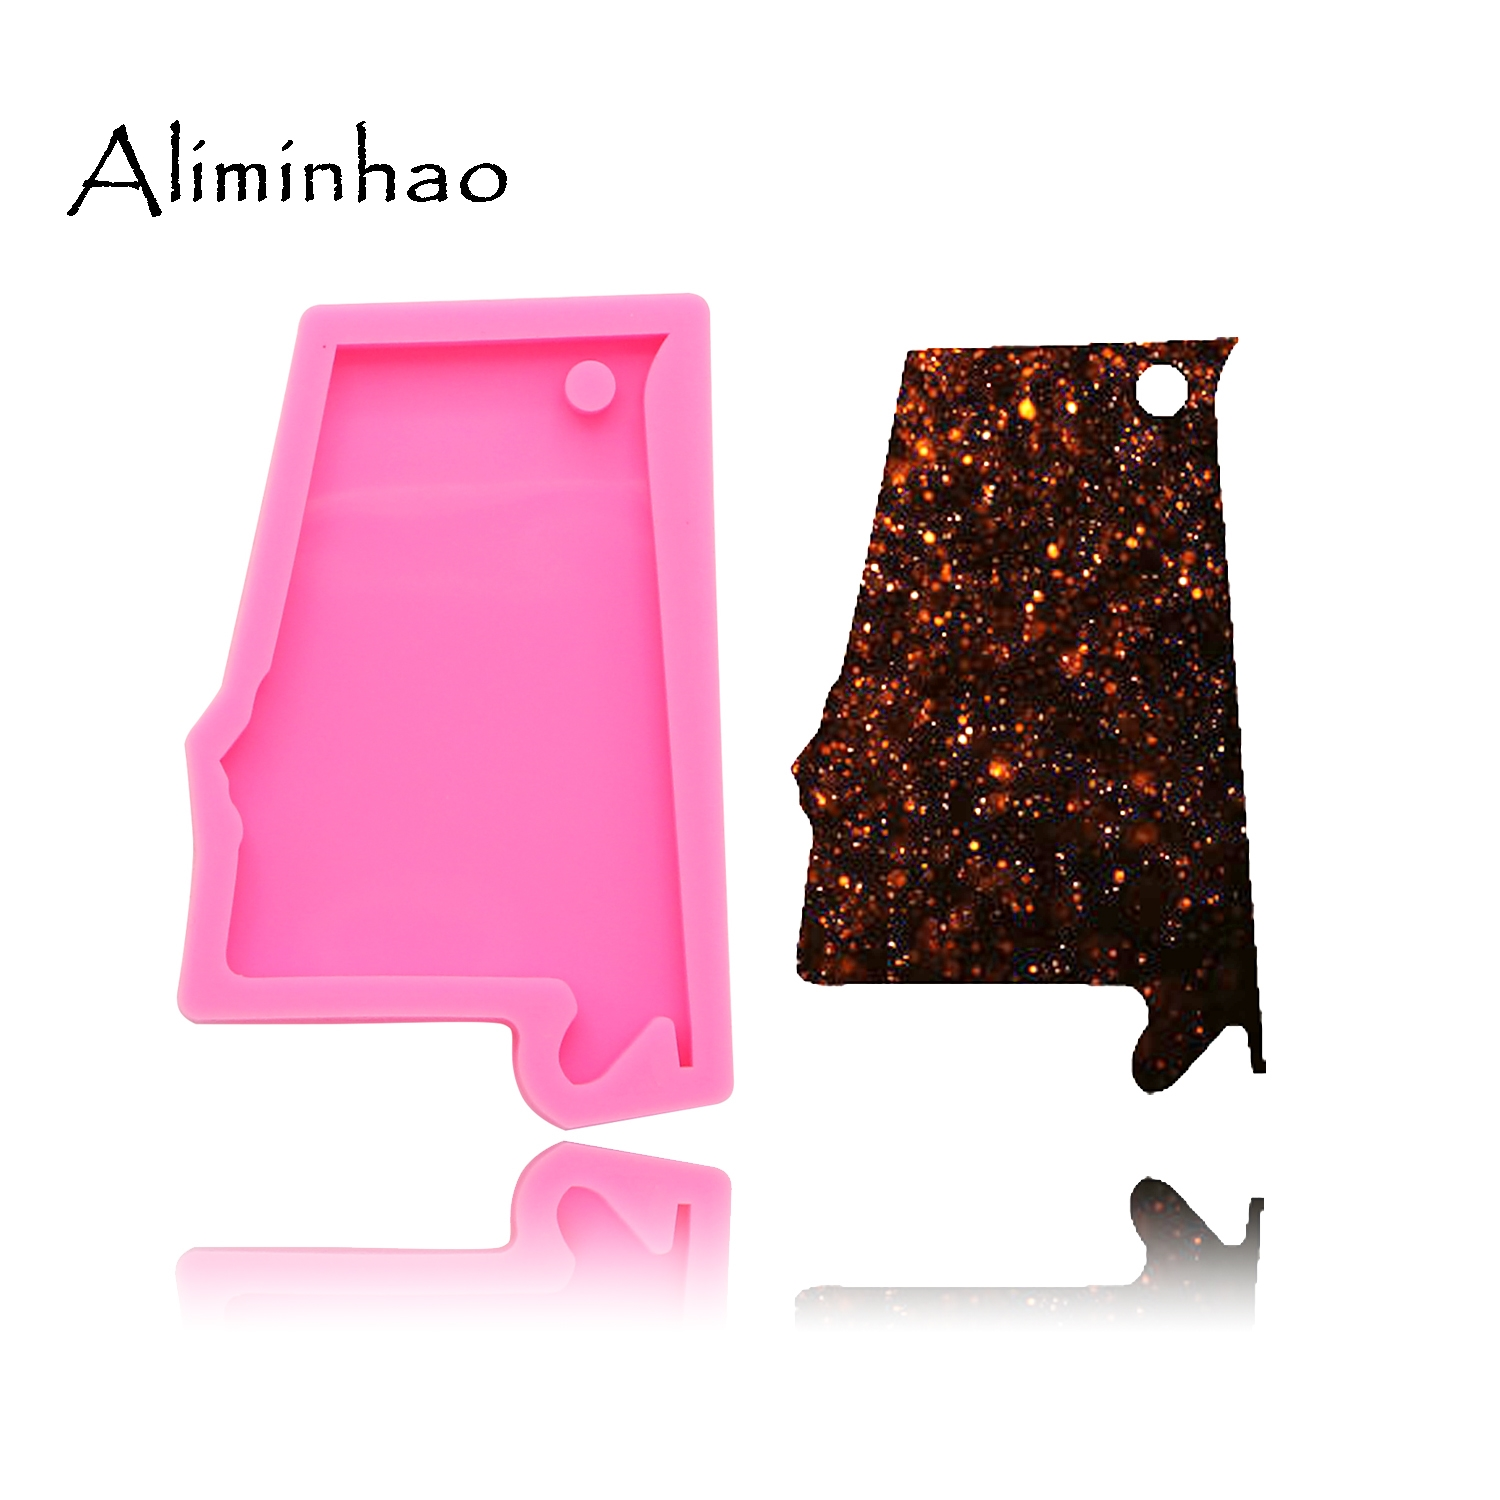 DY0200 Shiny Alabama State Keychains Mold Pendant Polymer Clay DIY Jewelry Making Glitter Epoxy Key Chain Silicone Resin Mold